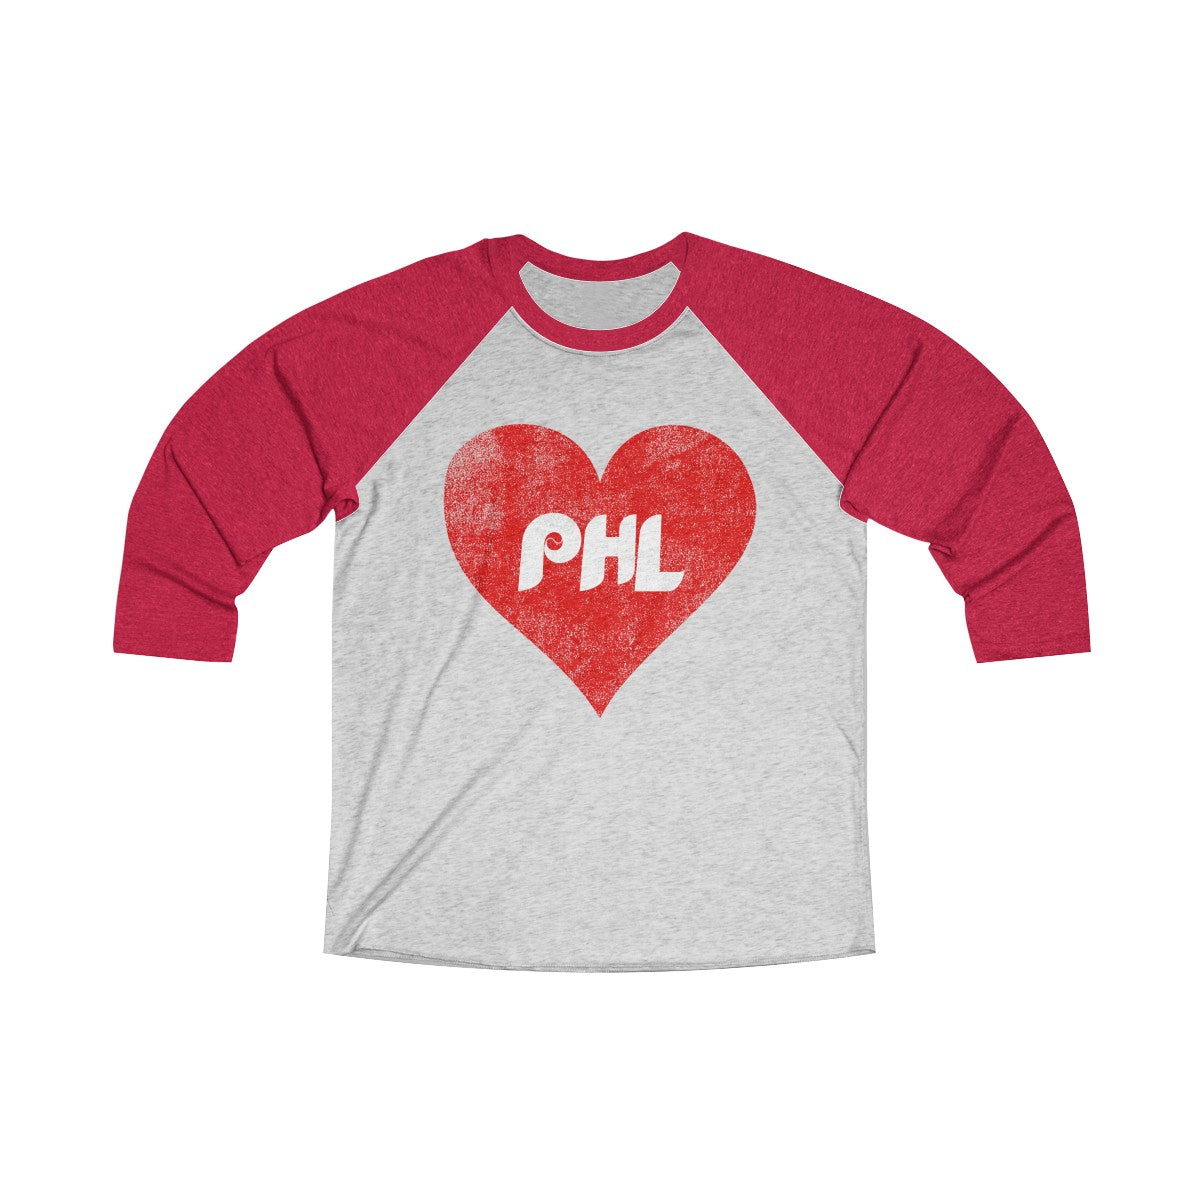 Retro Distressed Philly Baseball Love Unisex Tri-Blend 3/4 Raglan Tee